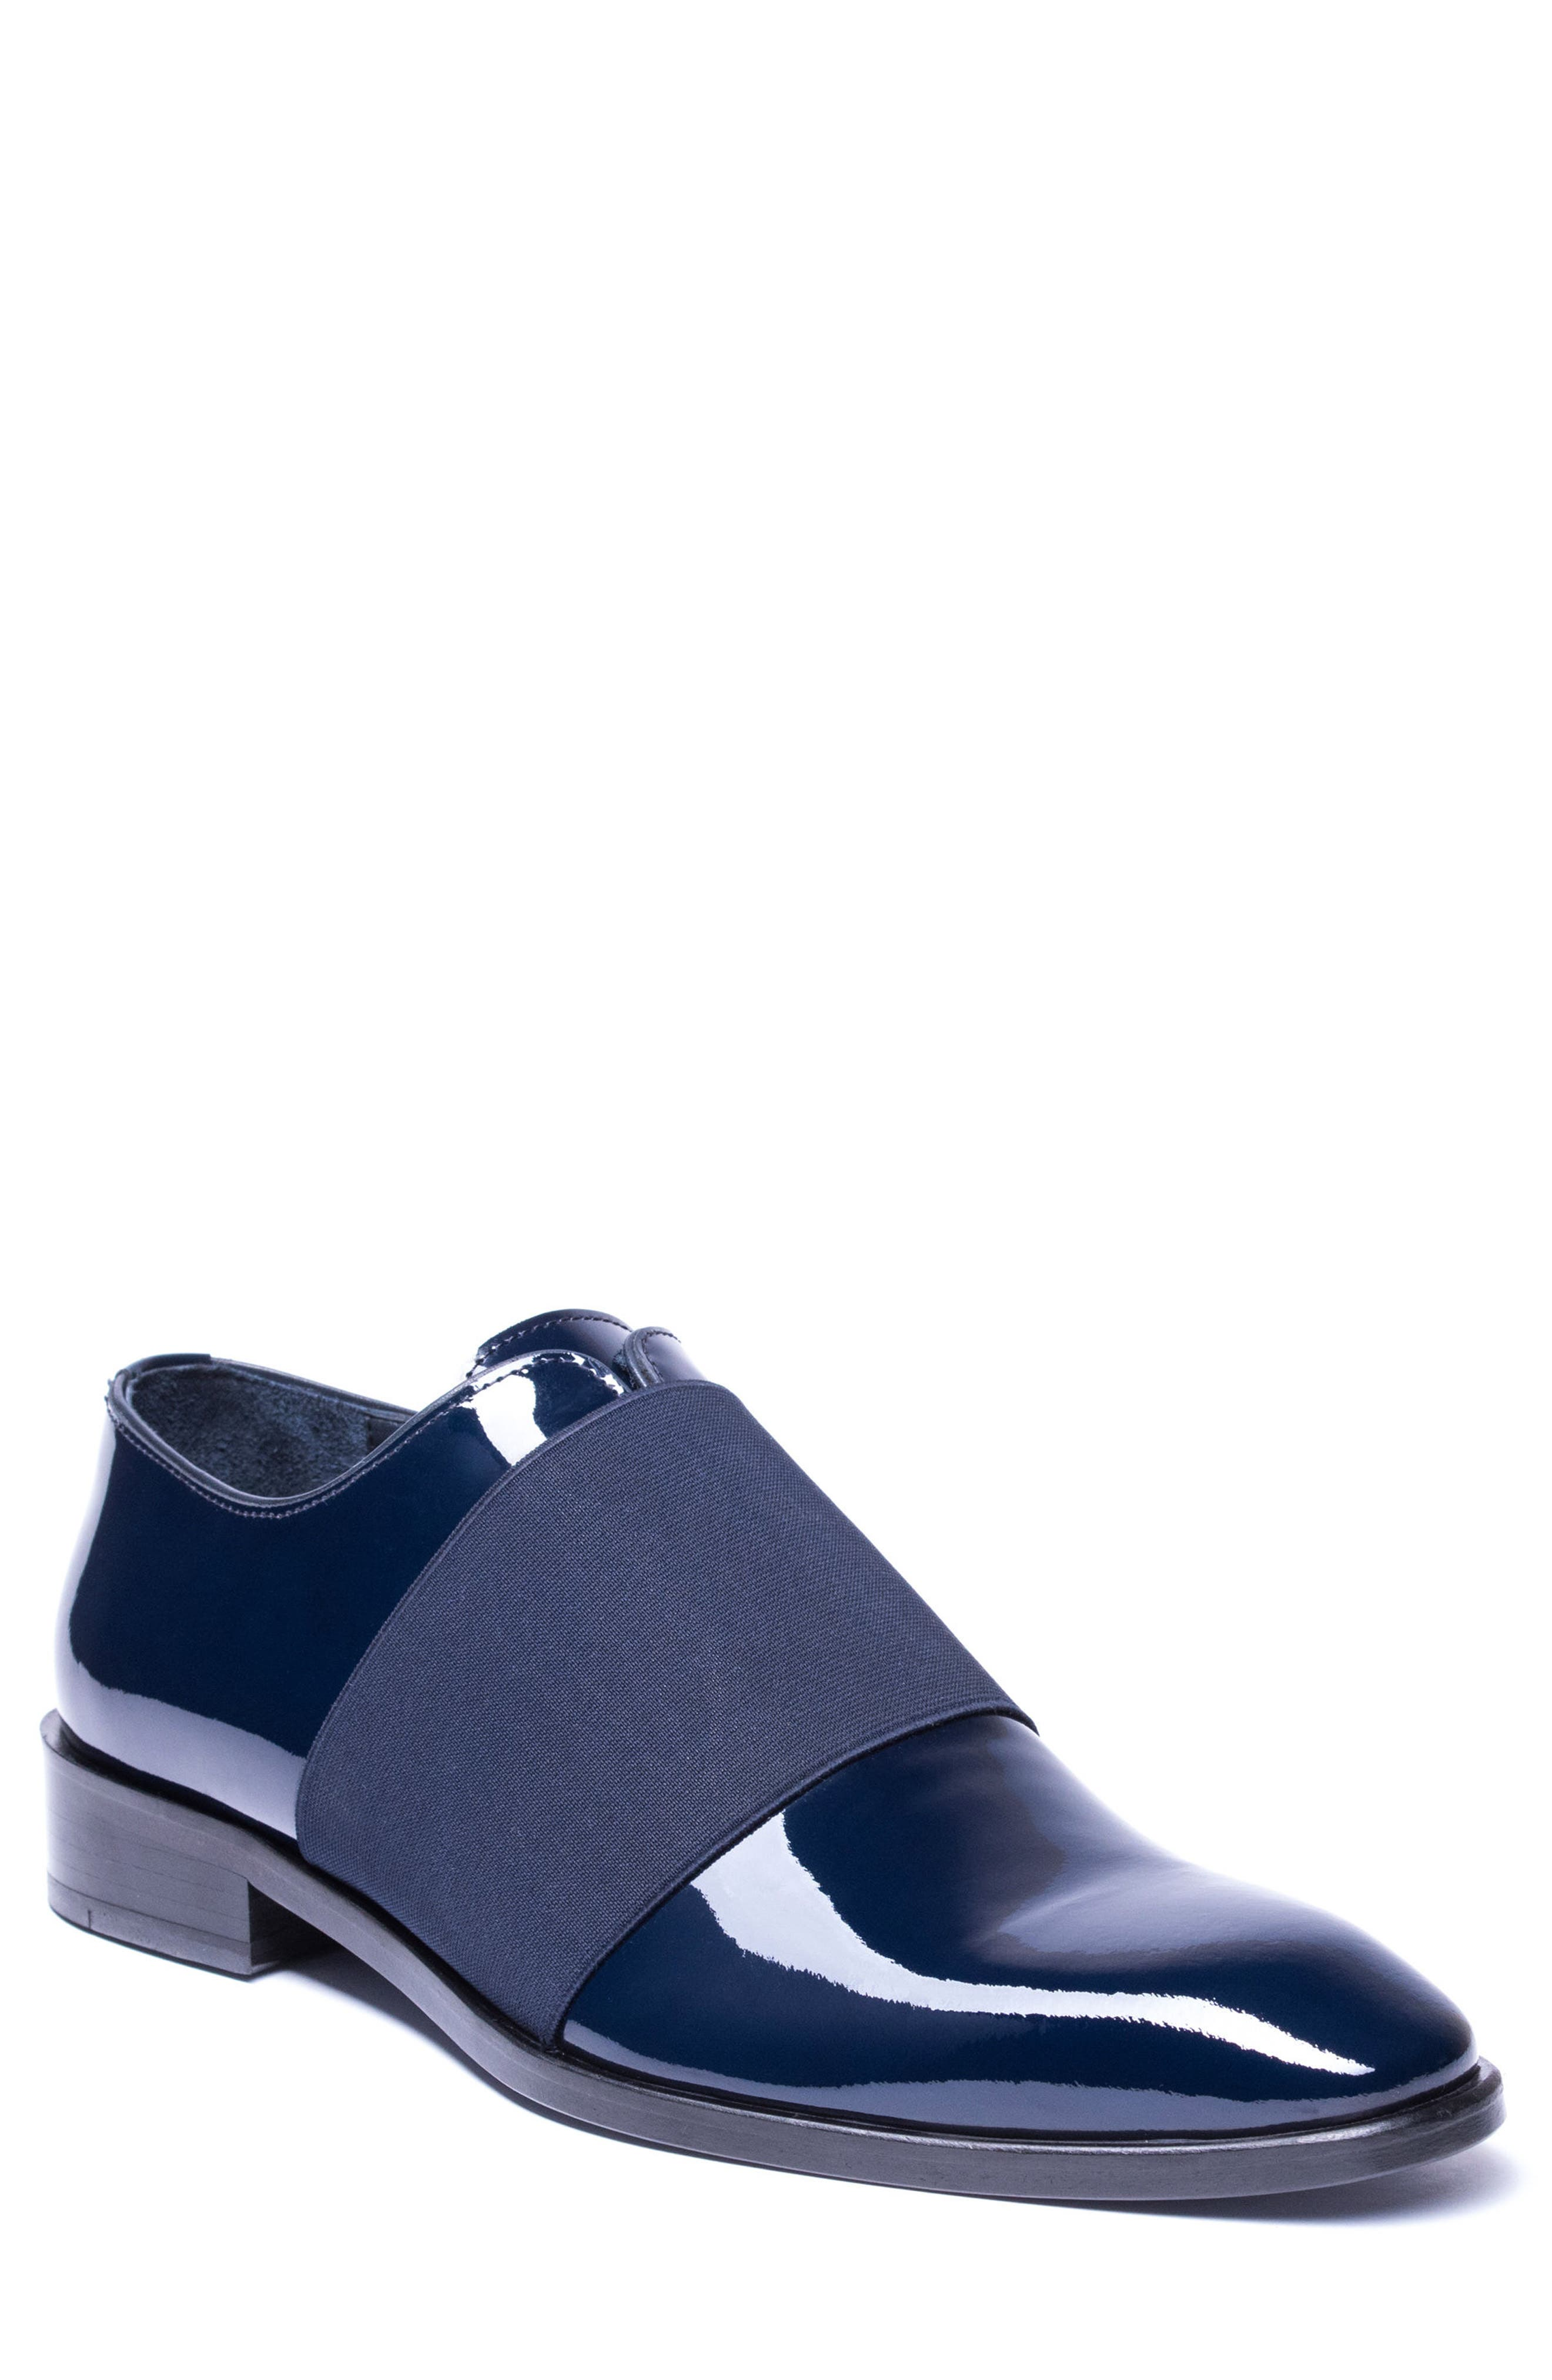 Vincenzo Whole Cut Slip-On,                         Main,                         color, Navy Leather